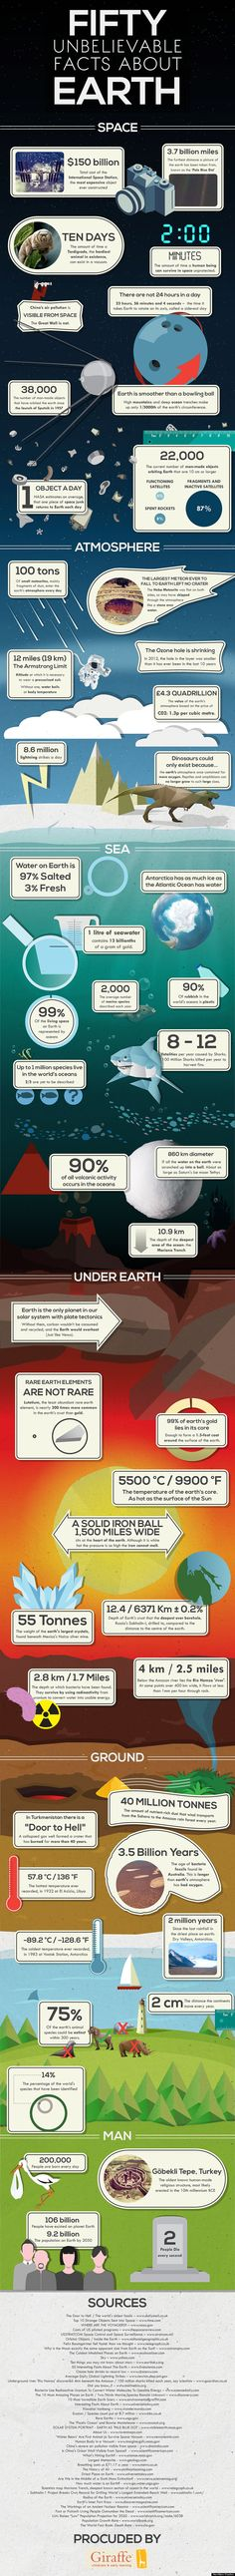 Fifty Amazing Facts About Earth (INFOGRAPHIC) #green #sustainability #rmogreen